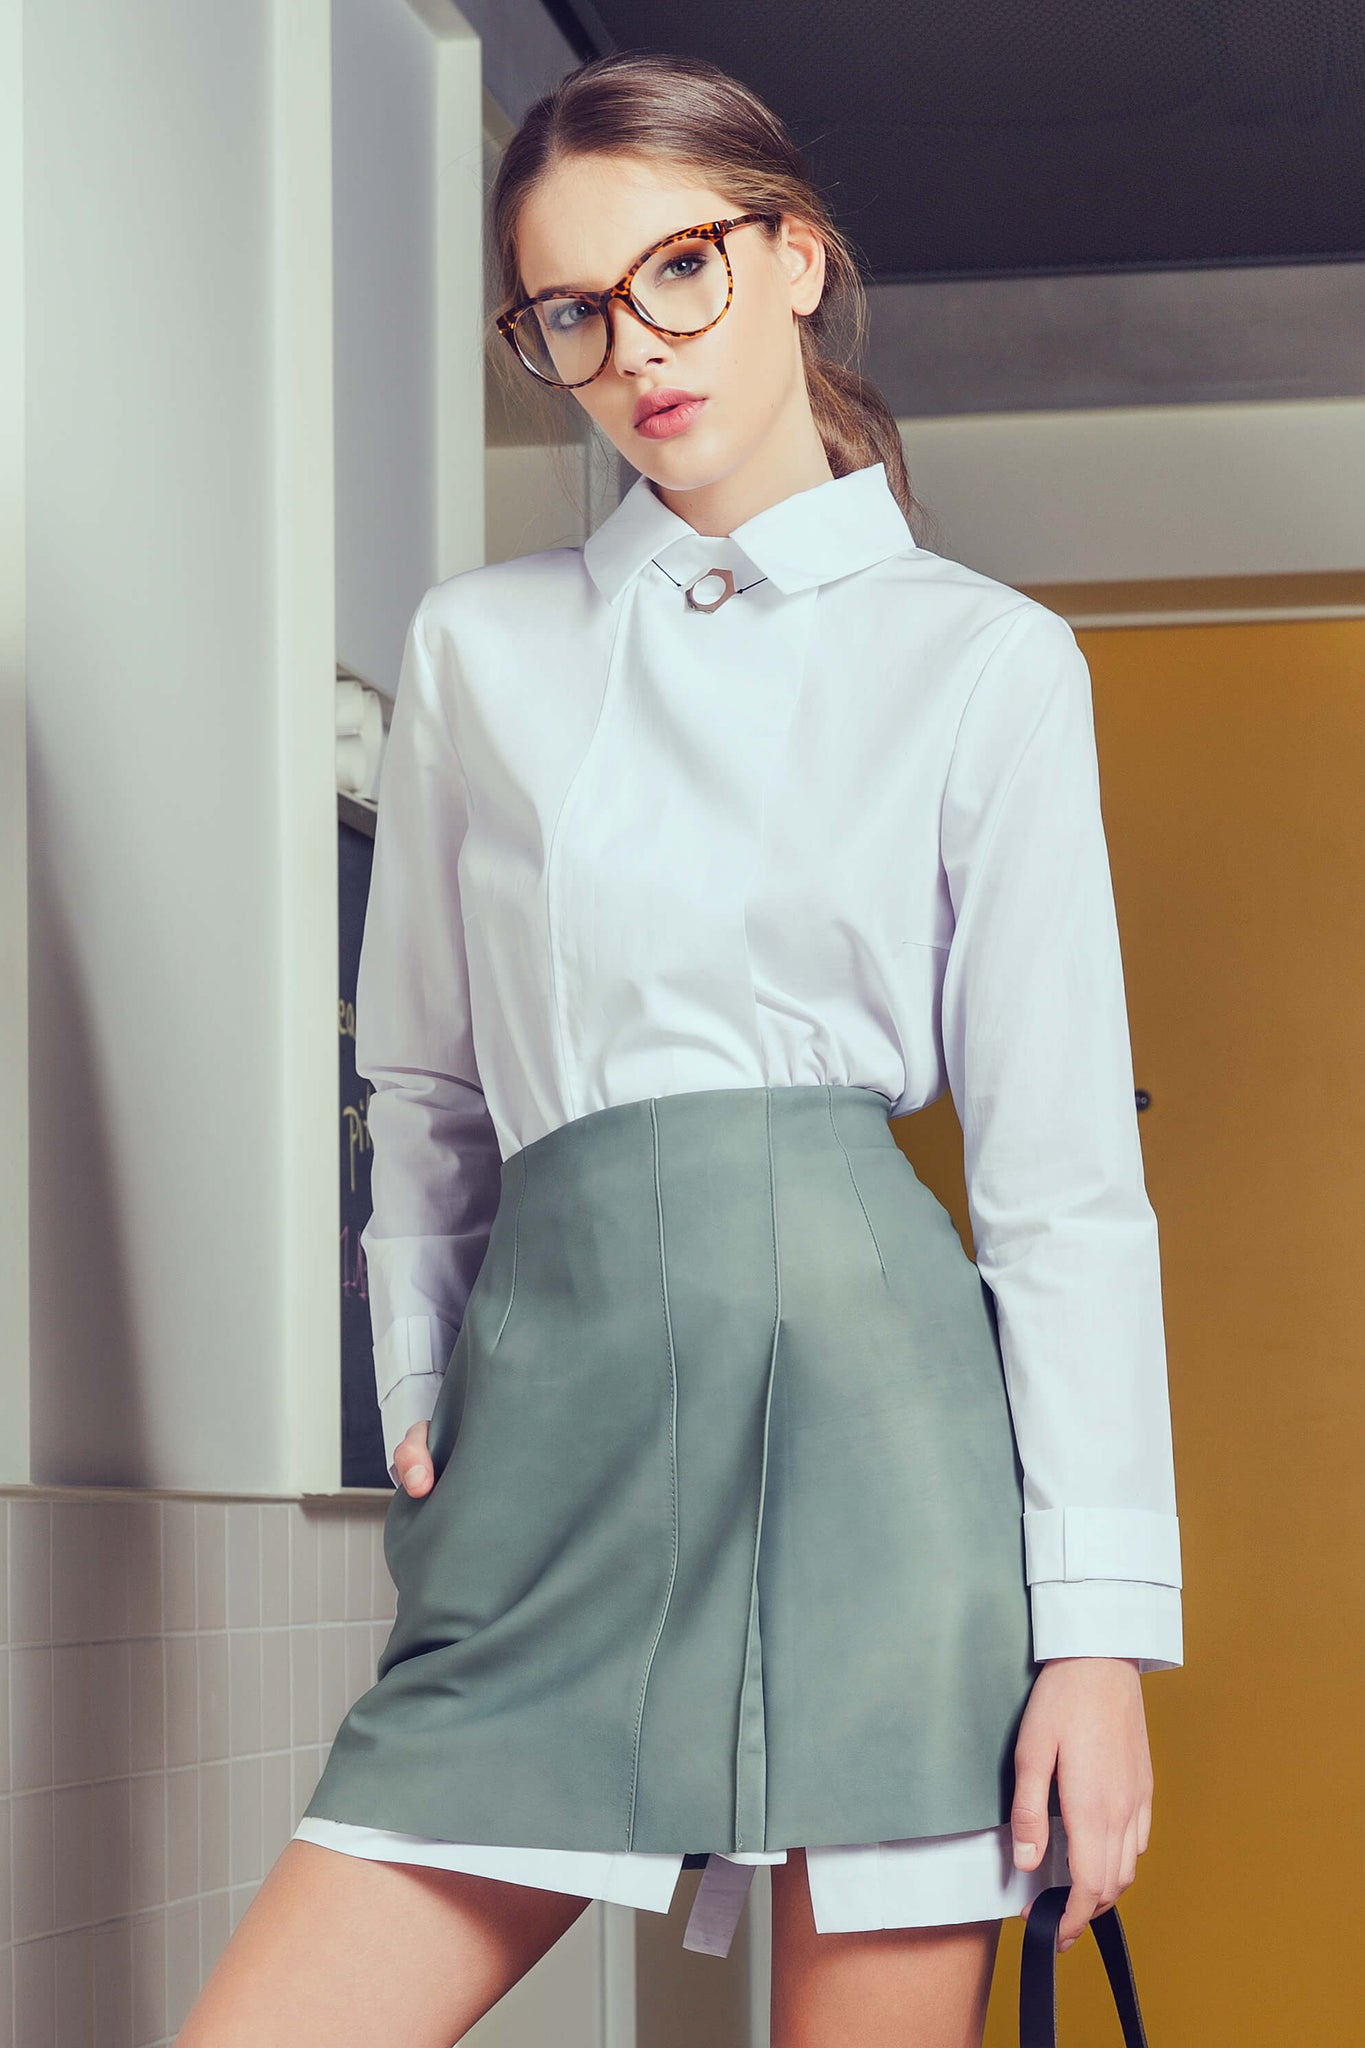 short leather skirt and white shirt